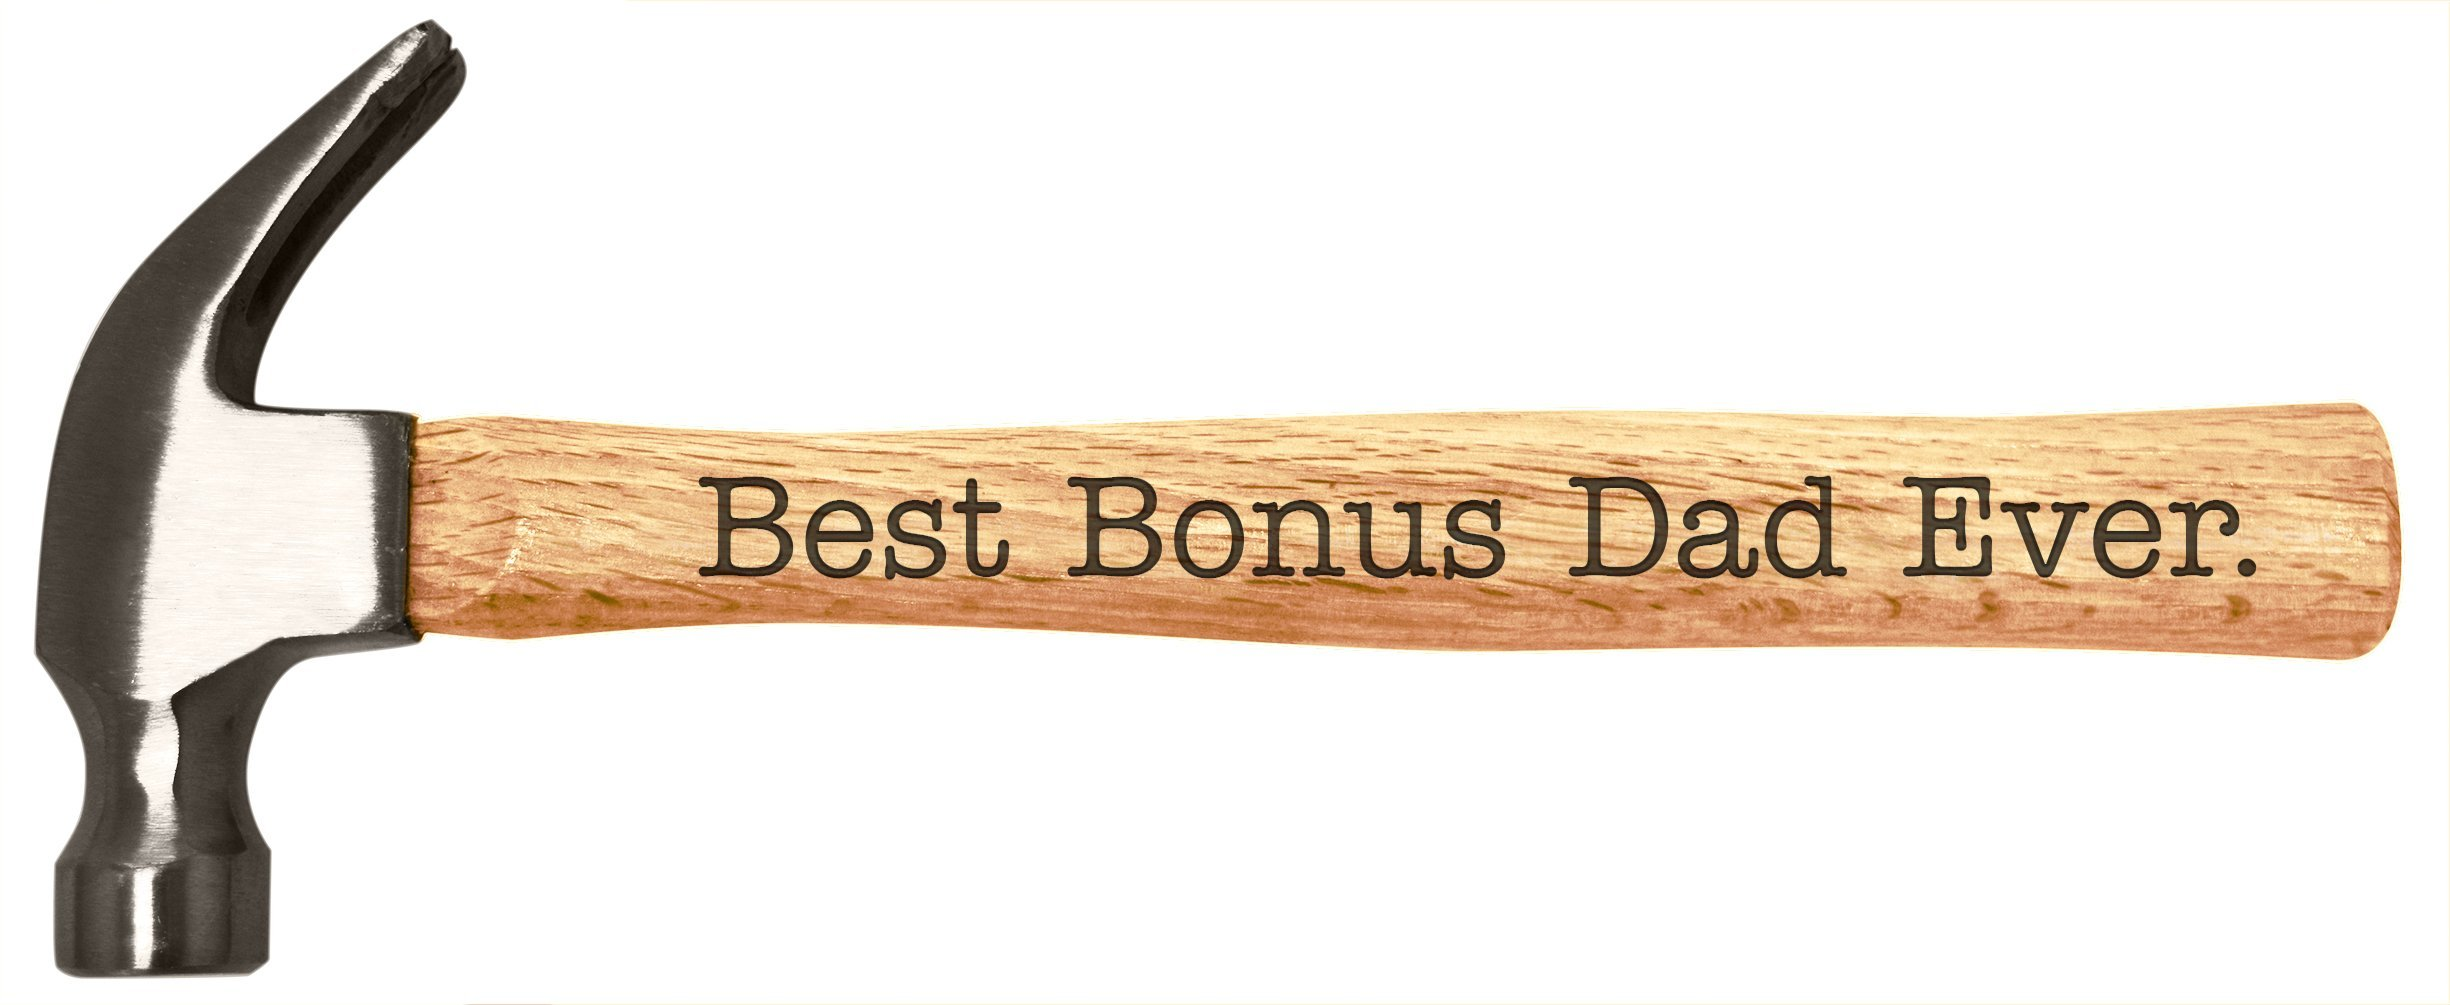 Fathers Day Gift for Stepdad Best Bonus Dad Ever Stepfather Gifts Engraved Wood Handle Steel Hammer